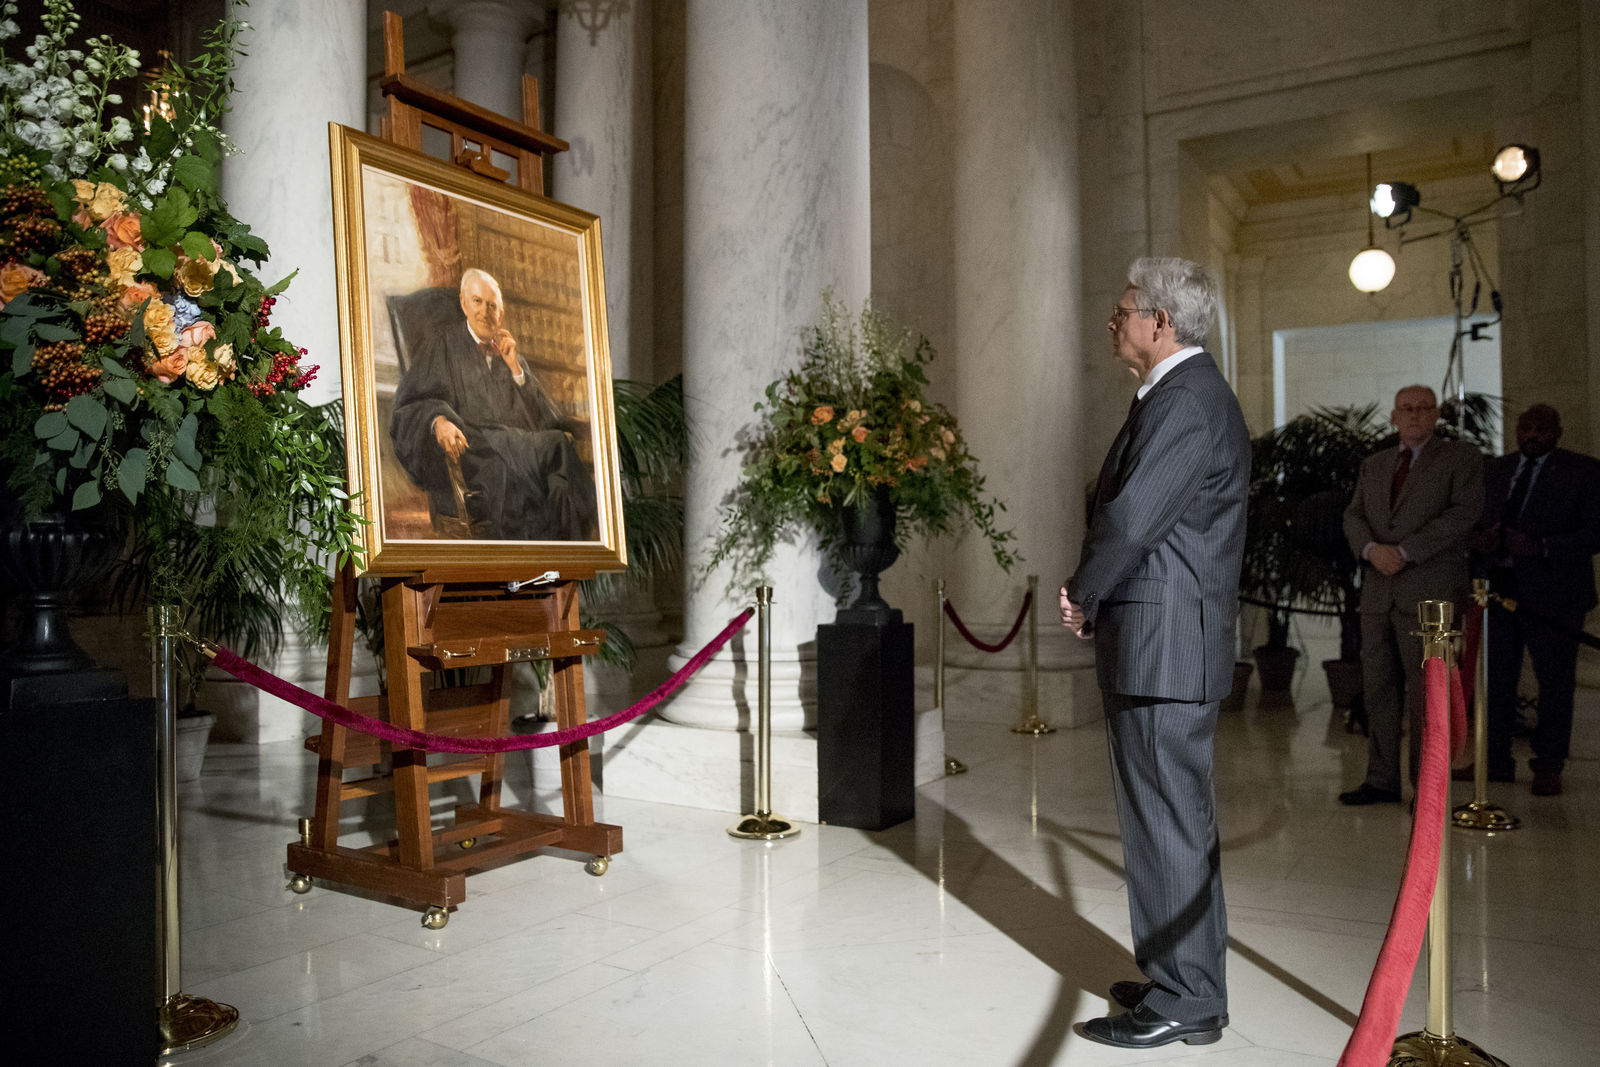 Former President Barack Obama's Supreme Court nominee Merrick Garland stops at a painting of the late Supreme Court Justice John Paul Stevens while paying his respects as Stevens lies in repose in the Great Hall of the Supreme Court in Washington, Monday, July 22, 2019. (AP Photo/Andrew Harnik)